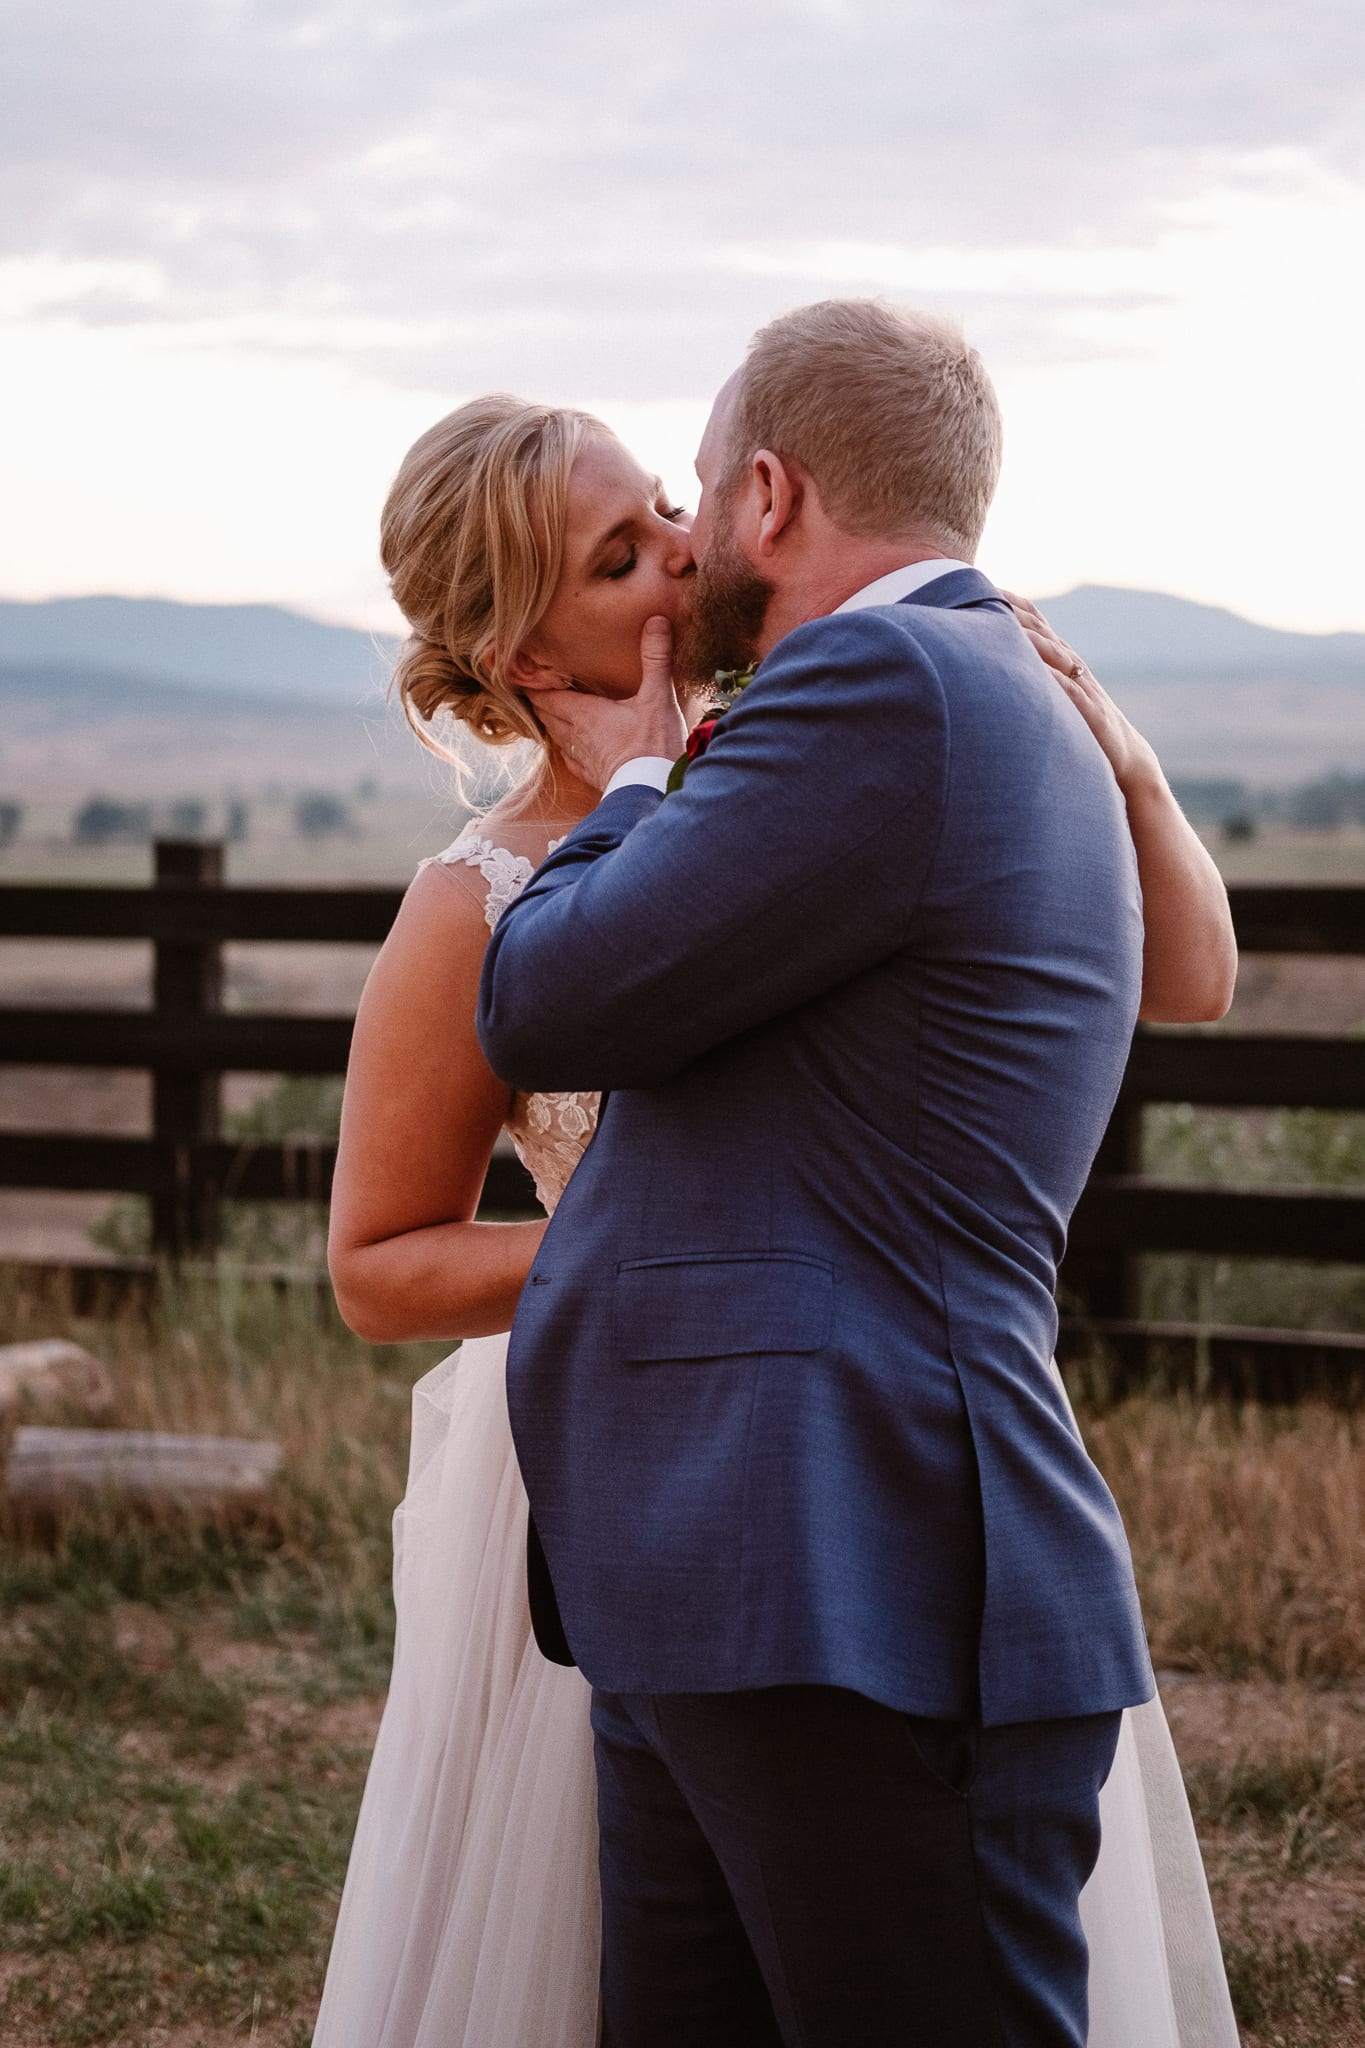 Steamboat Springs wedding photographer, La Joya Dulce wedding, Colorado ranch wedding venues, bride and groom kissing